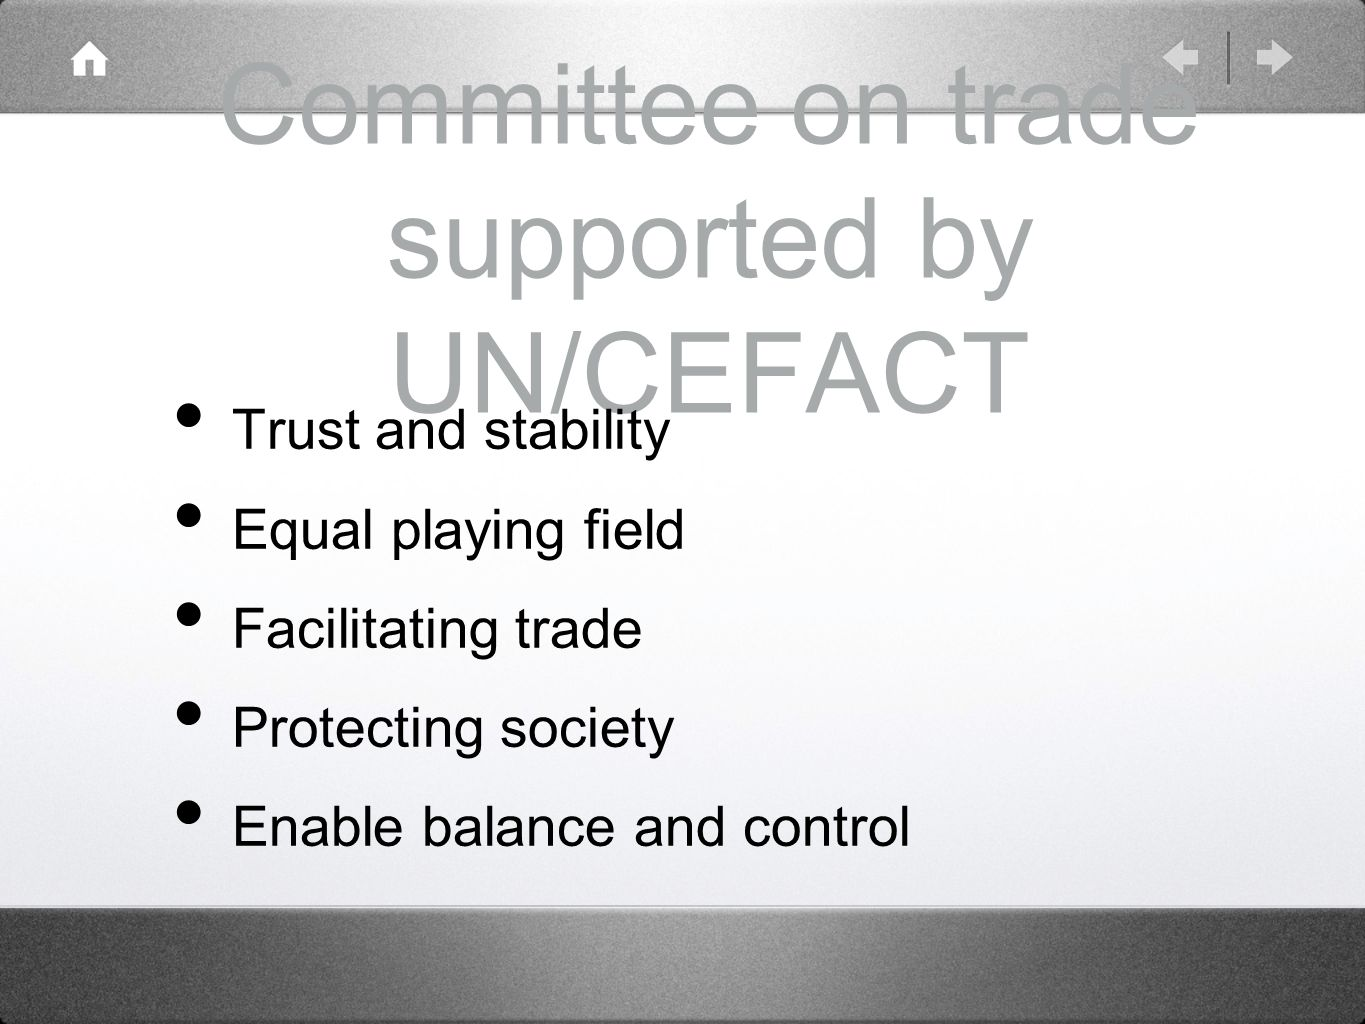 Committee on trade supported by UN/CEFACT